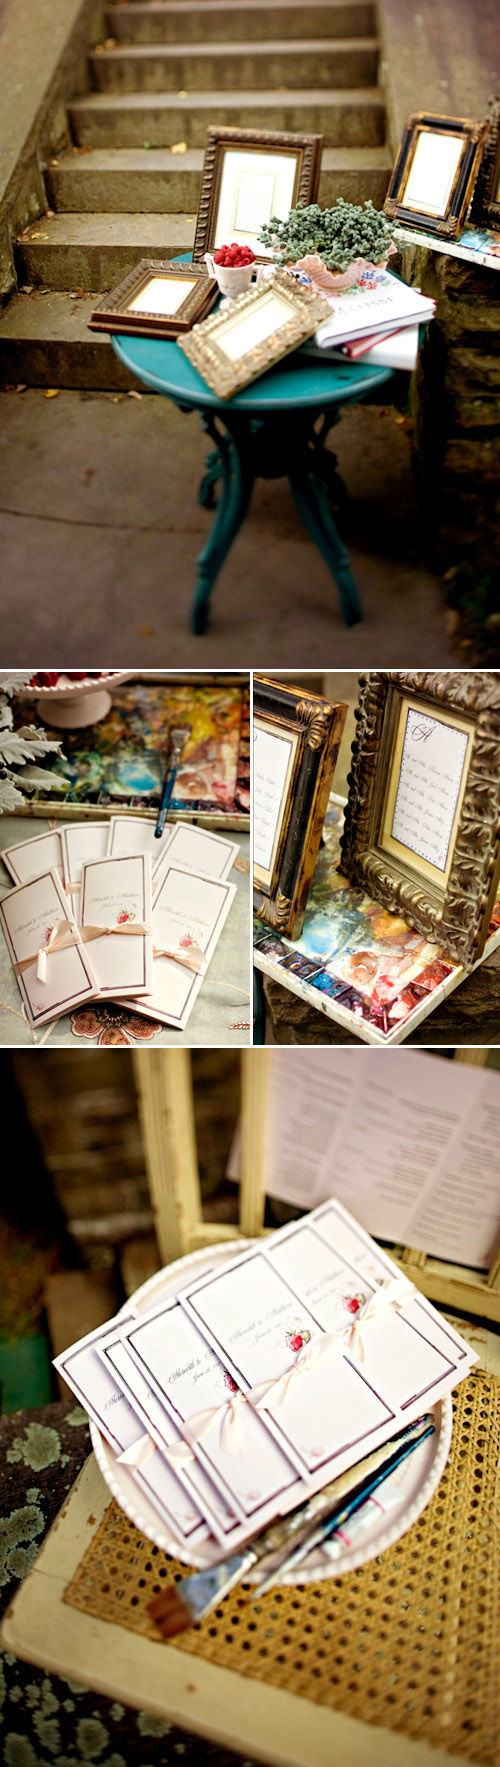 Watercolor inspired wedding decor by Momental Designs, photos by Darker Shades of Brown Photography | junebugweddings.com